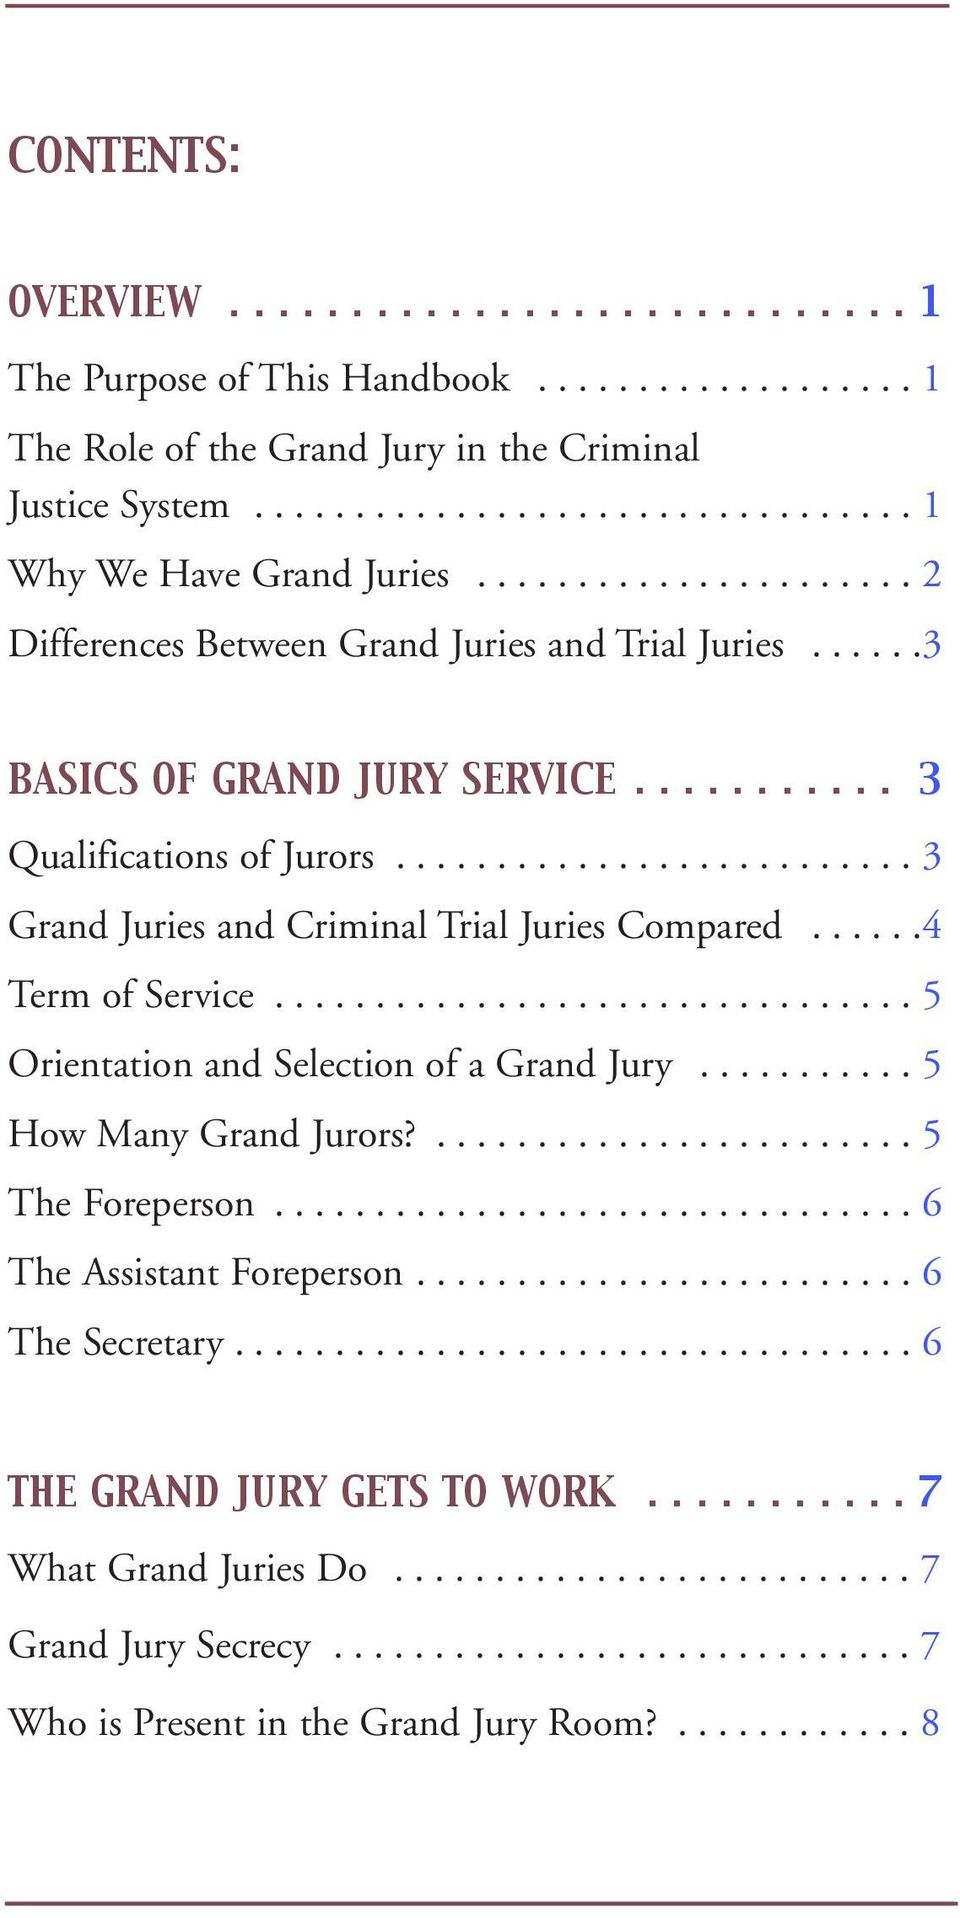 .....4 Term of Service................................ 5 Orientation and Selection of a Grand Jury........... 5 How Many Grand Jurors?........................ 5 The Foreperson.